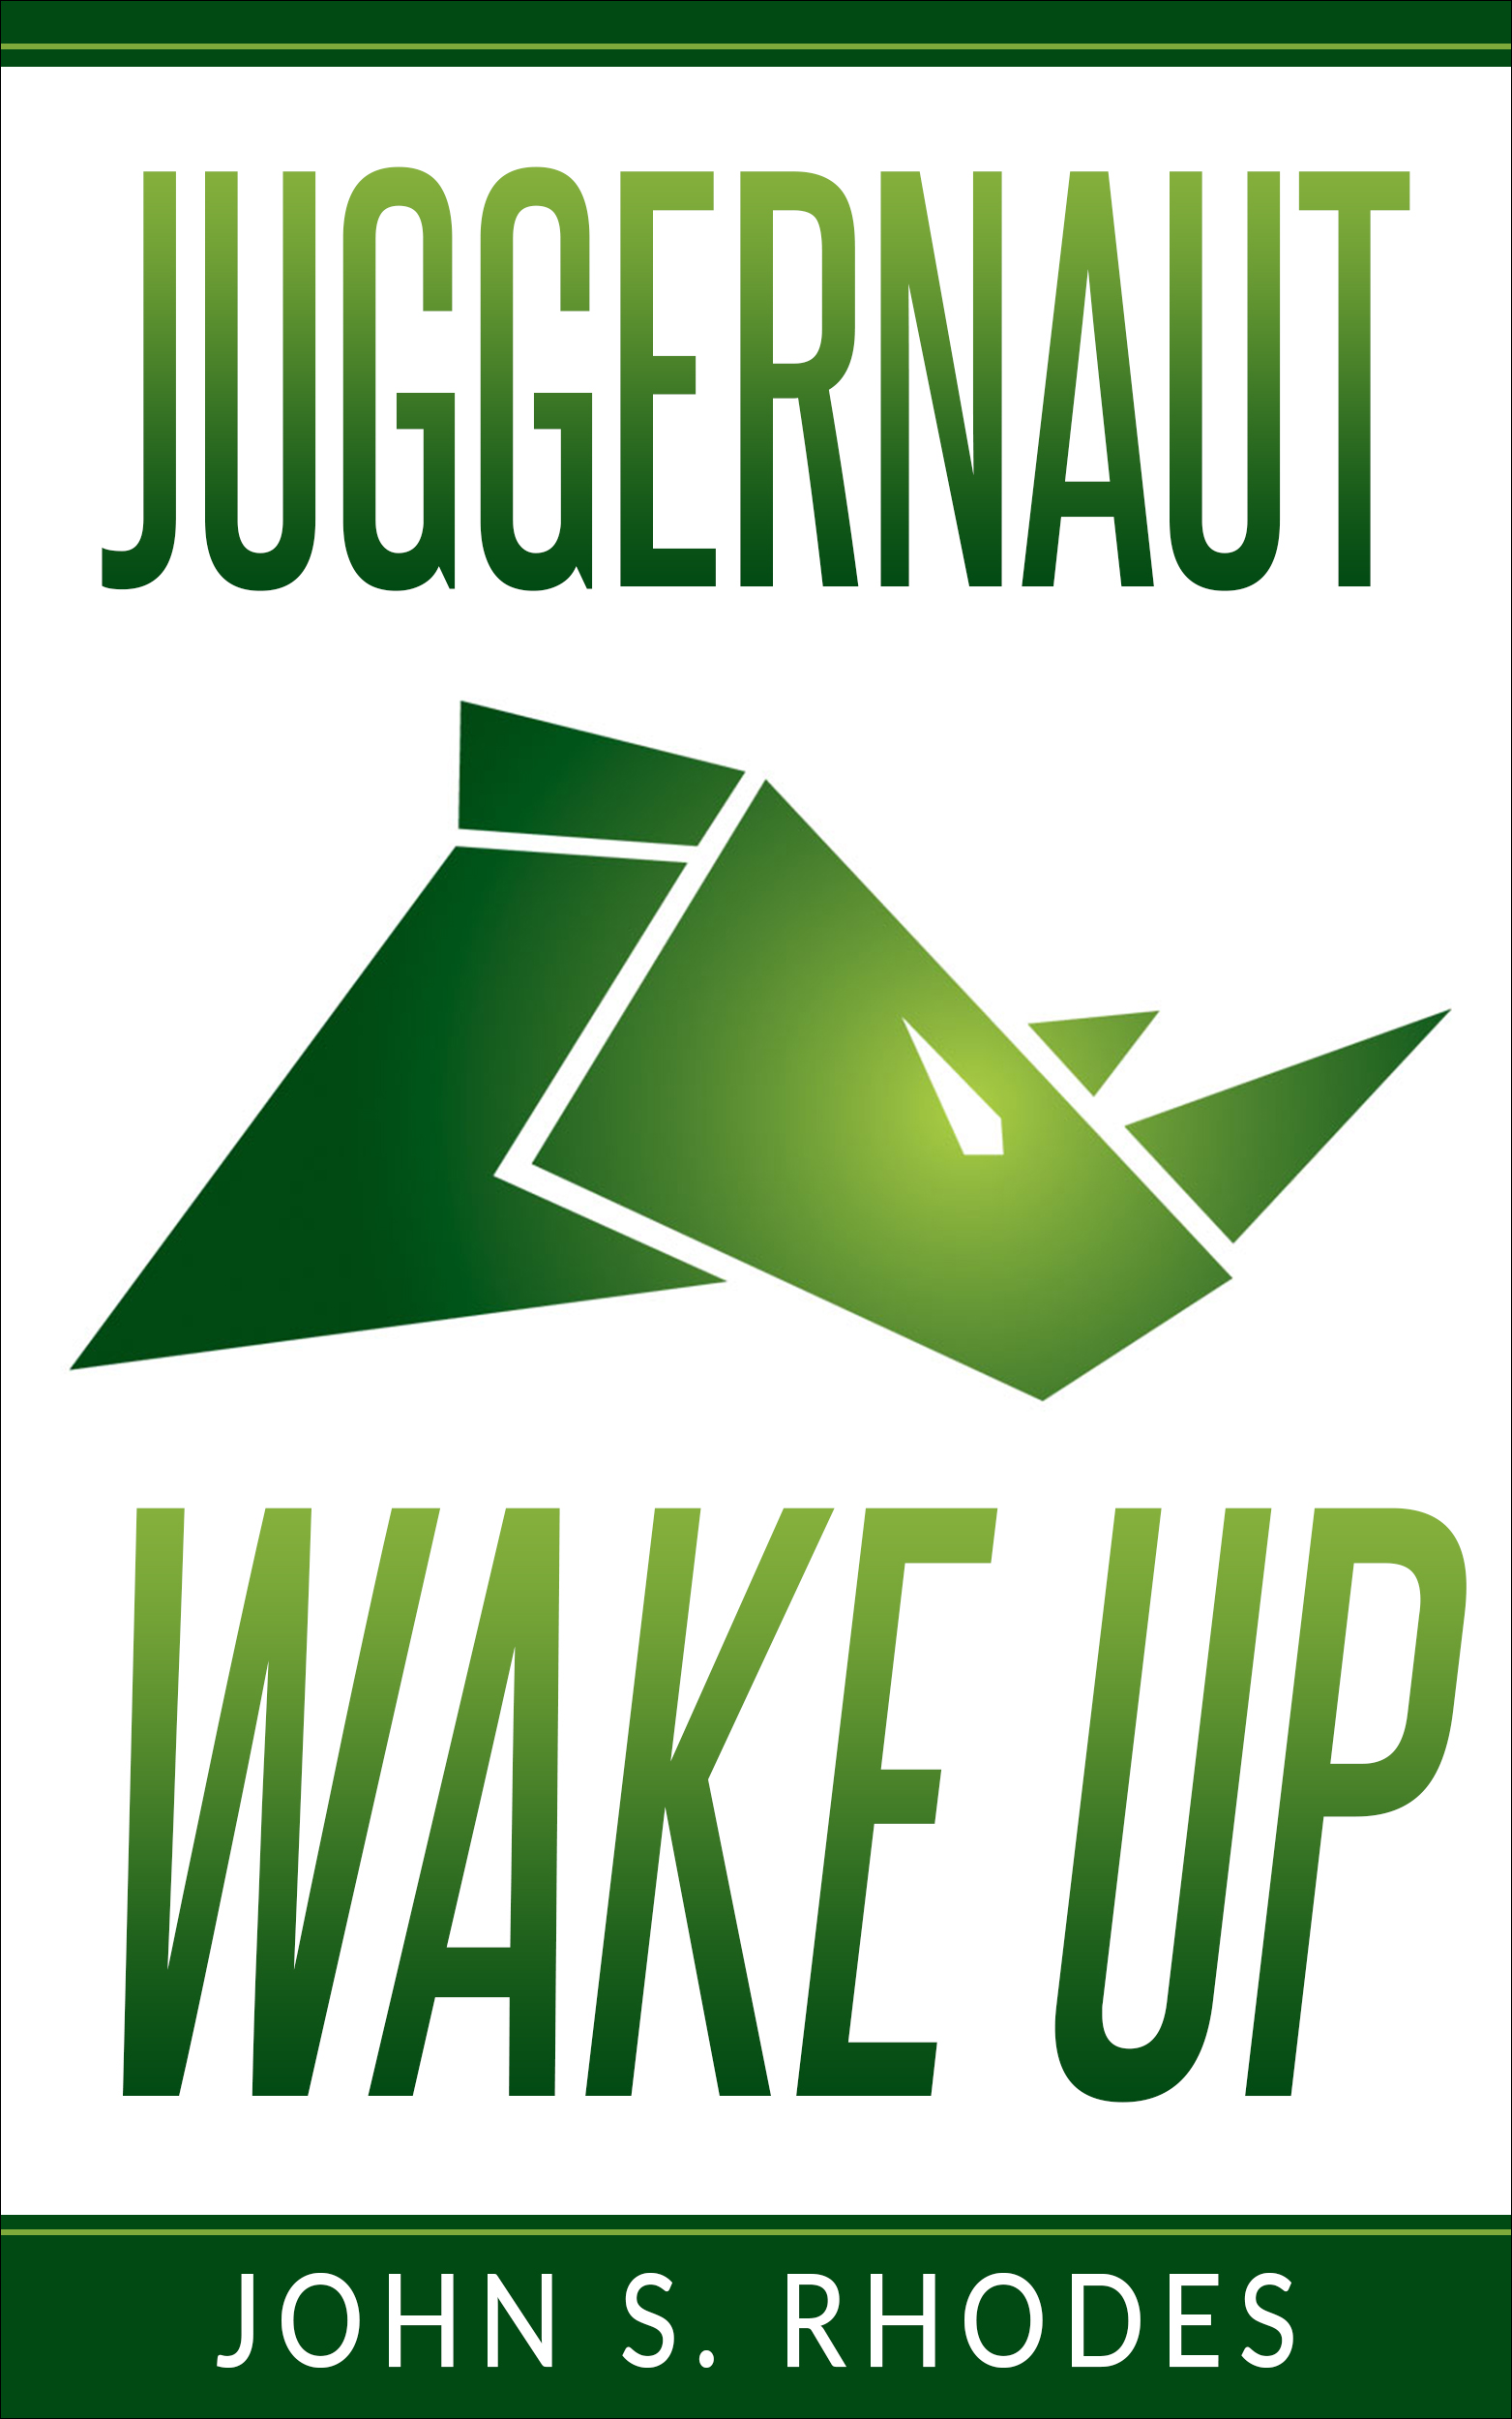 Juggernaut Wake Up by John S Rhodes